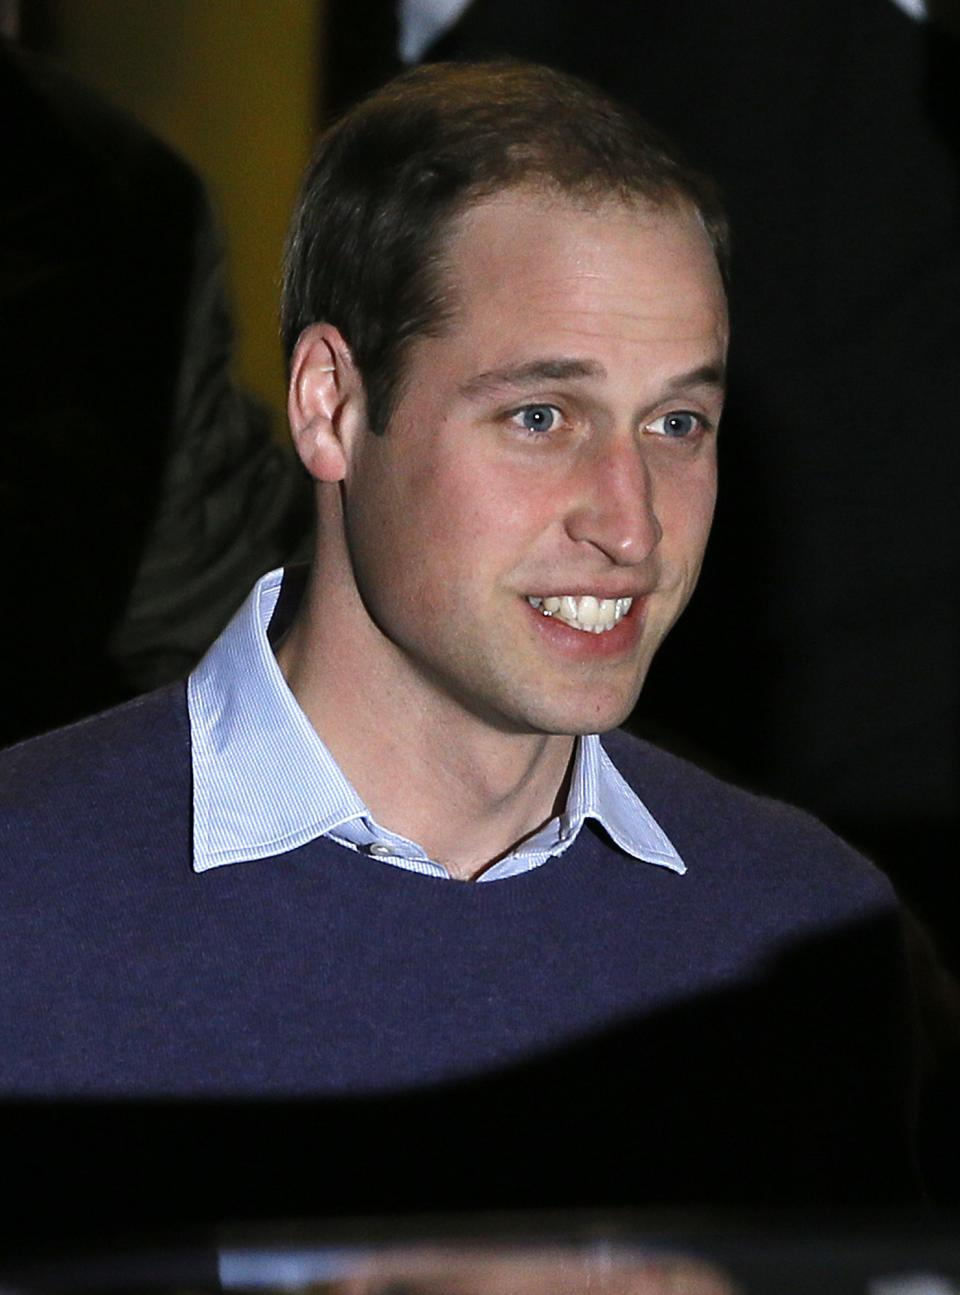 Britain's Prince William leaves a hospital in central London, Tuesday, Dec. 4, 2012. Kate, The Duchess of Cambridge is being treated at the hospital for severe morning sickness. (AP Photo/Kirsty Wigglesworth)